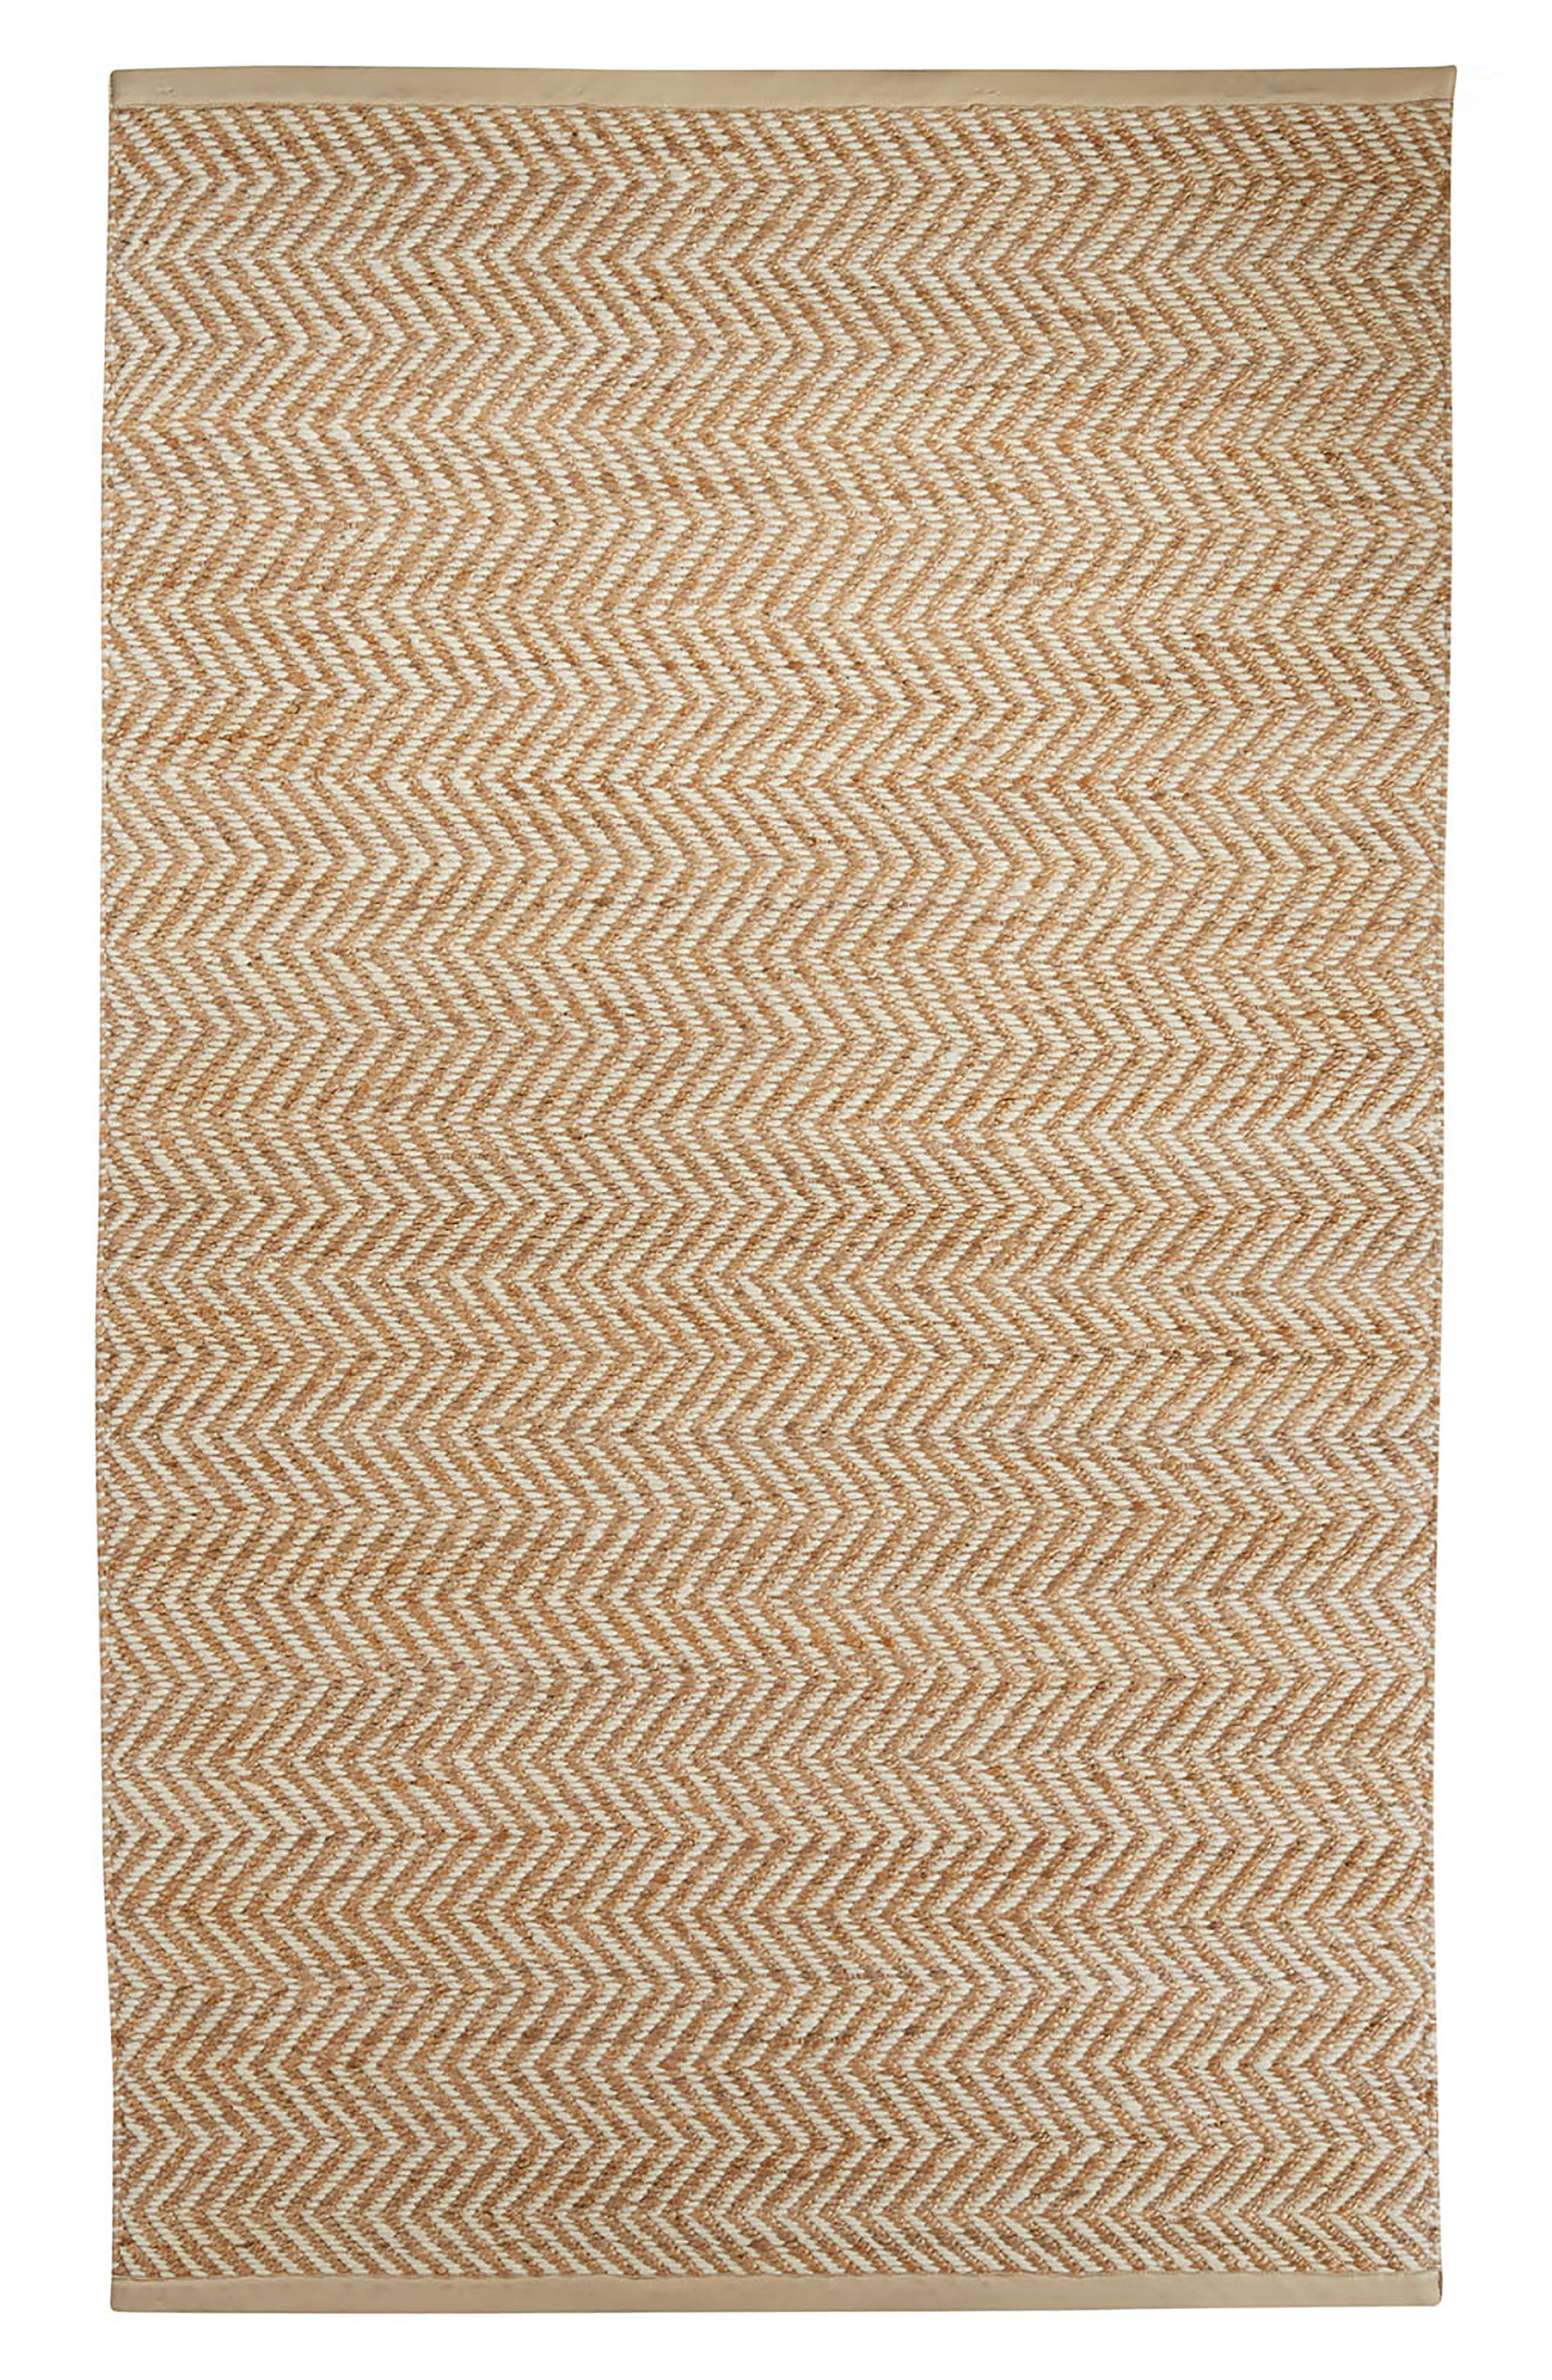 Malia Rug,                             Main thumbnail 1, color,                             250